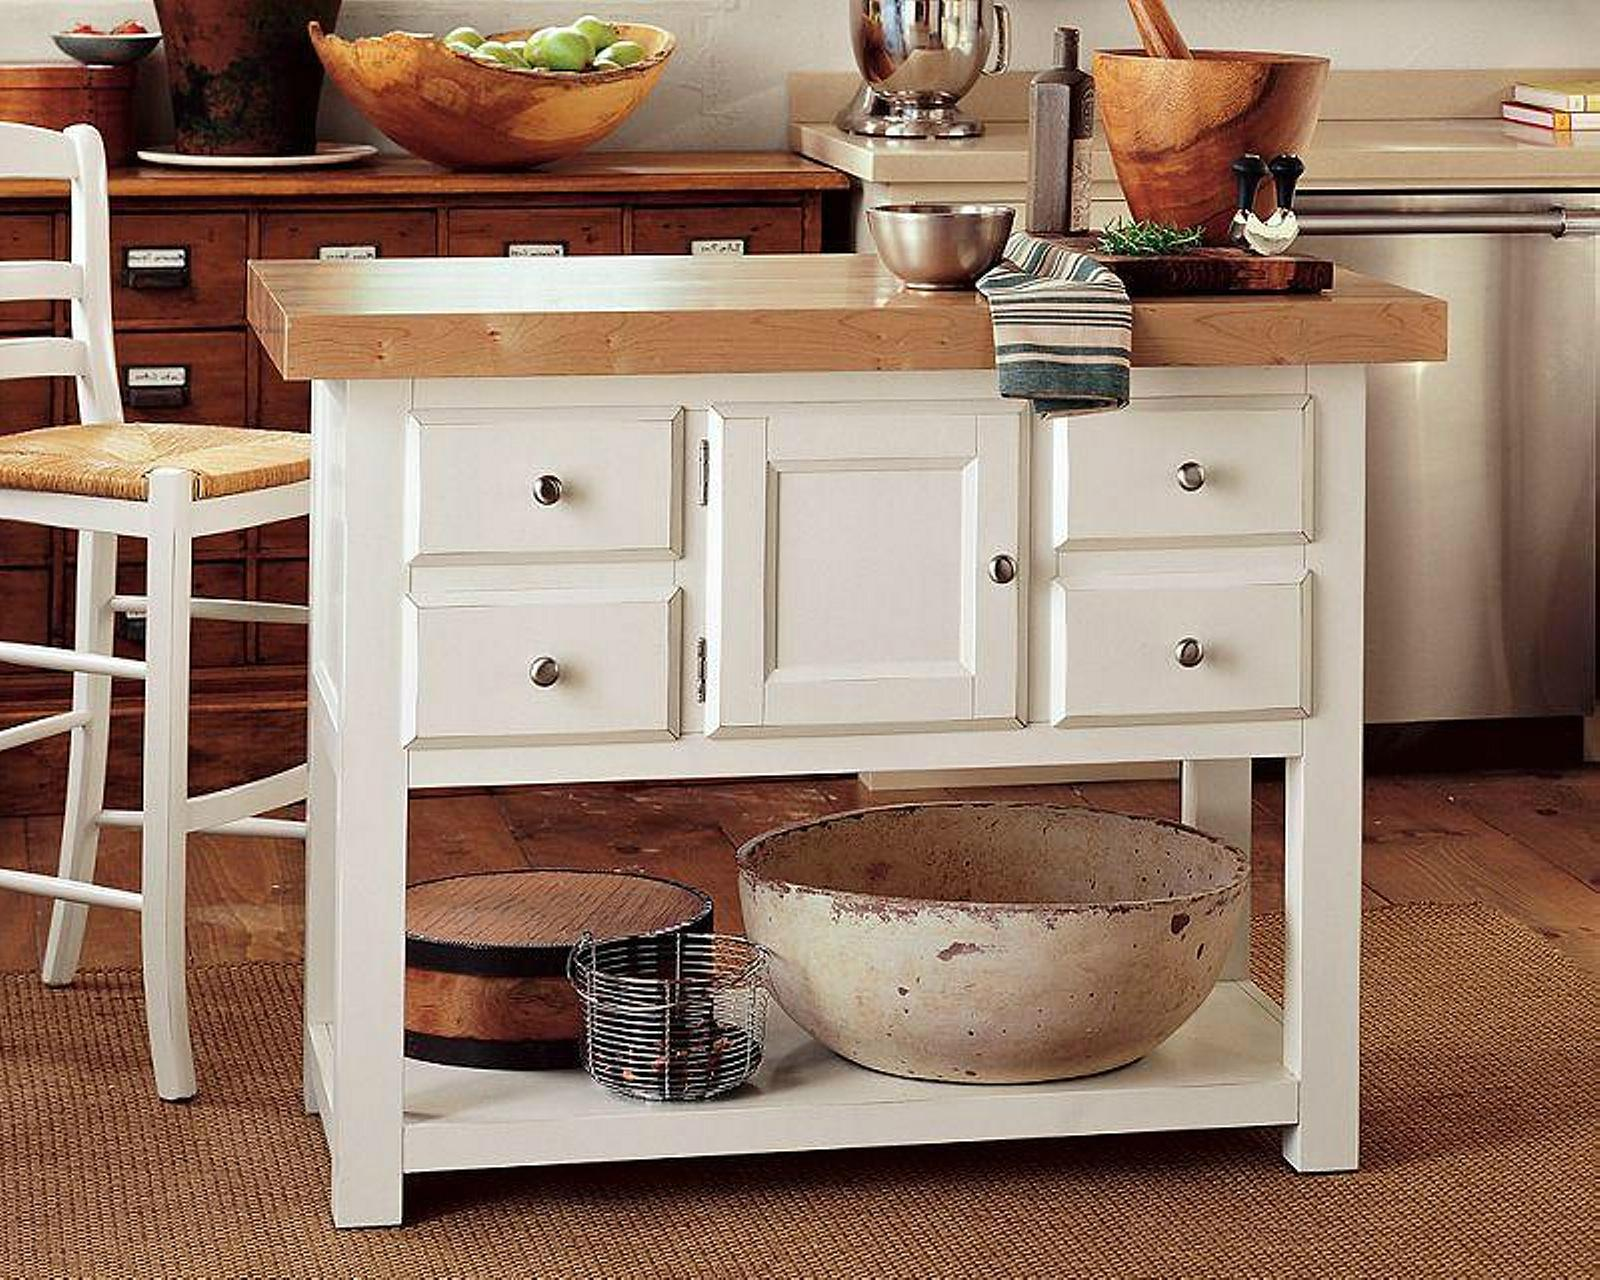 White Butcher Block Kitchen Table : White 4 Drawers Kitchen Prep Island Butcher Block Table - WD-2394 - Mighty (Taiwan Manufacturer ...